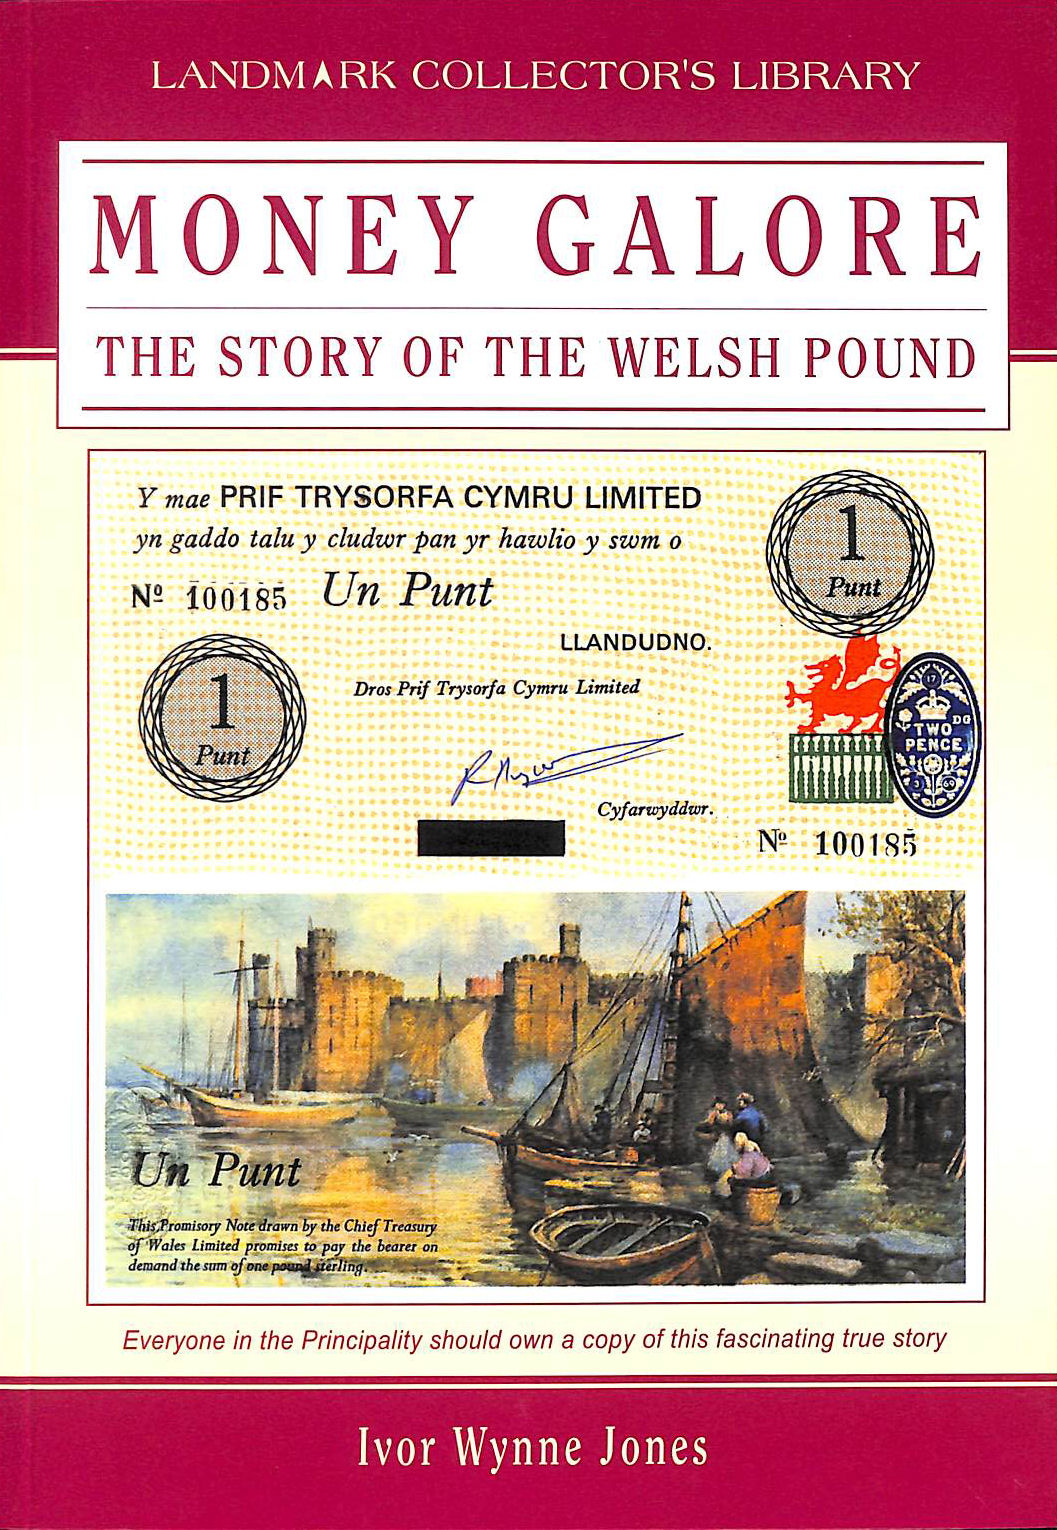 Image for Money Galore: The Story of the Welsh Pound (Landmark Collectors Library)